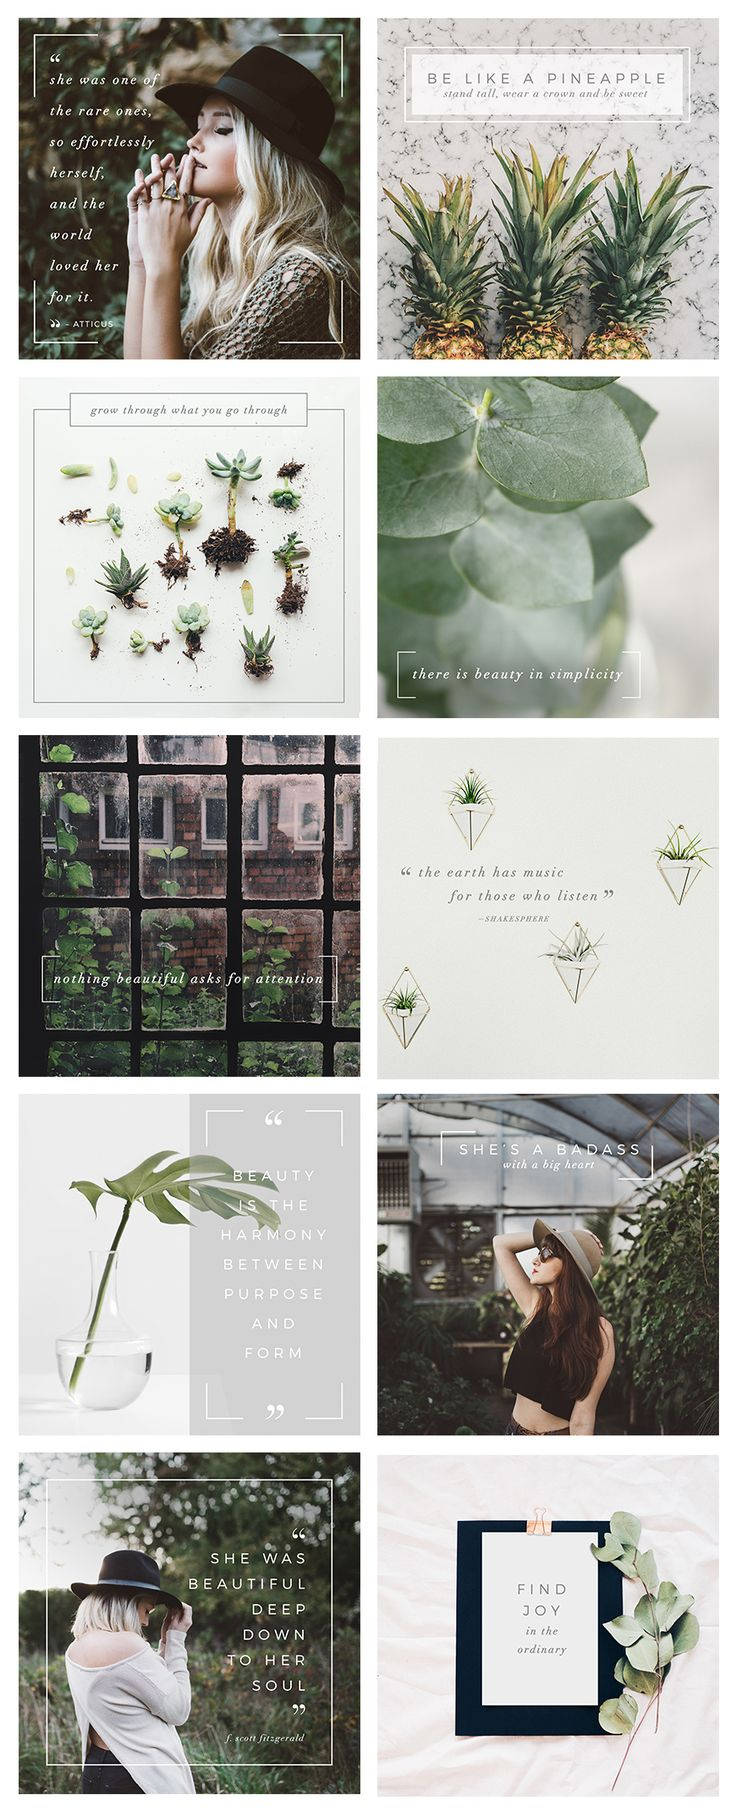 10 FREE INSTAGRAM IMAGES! Perfect for natural beauty brands or every day inspiration!  This bundle would be a great match for your personal or commercial needs: perfect for bloggers, fashion and beauty brands, magazines and so much more!  This social media bundle includes 10 templates designed natively for Instagram. However, You can also use the design on your Twitter, LinkedIn, Blog etc. These files aren't only set to be used with a specific media!